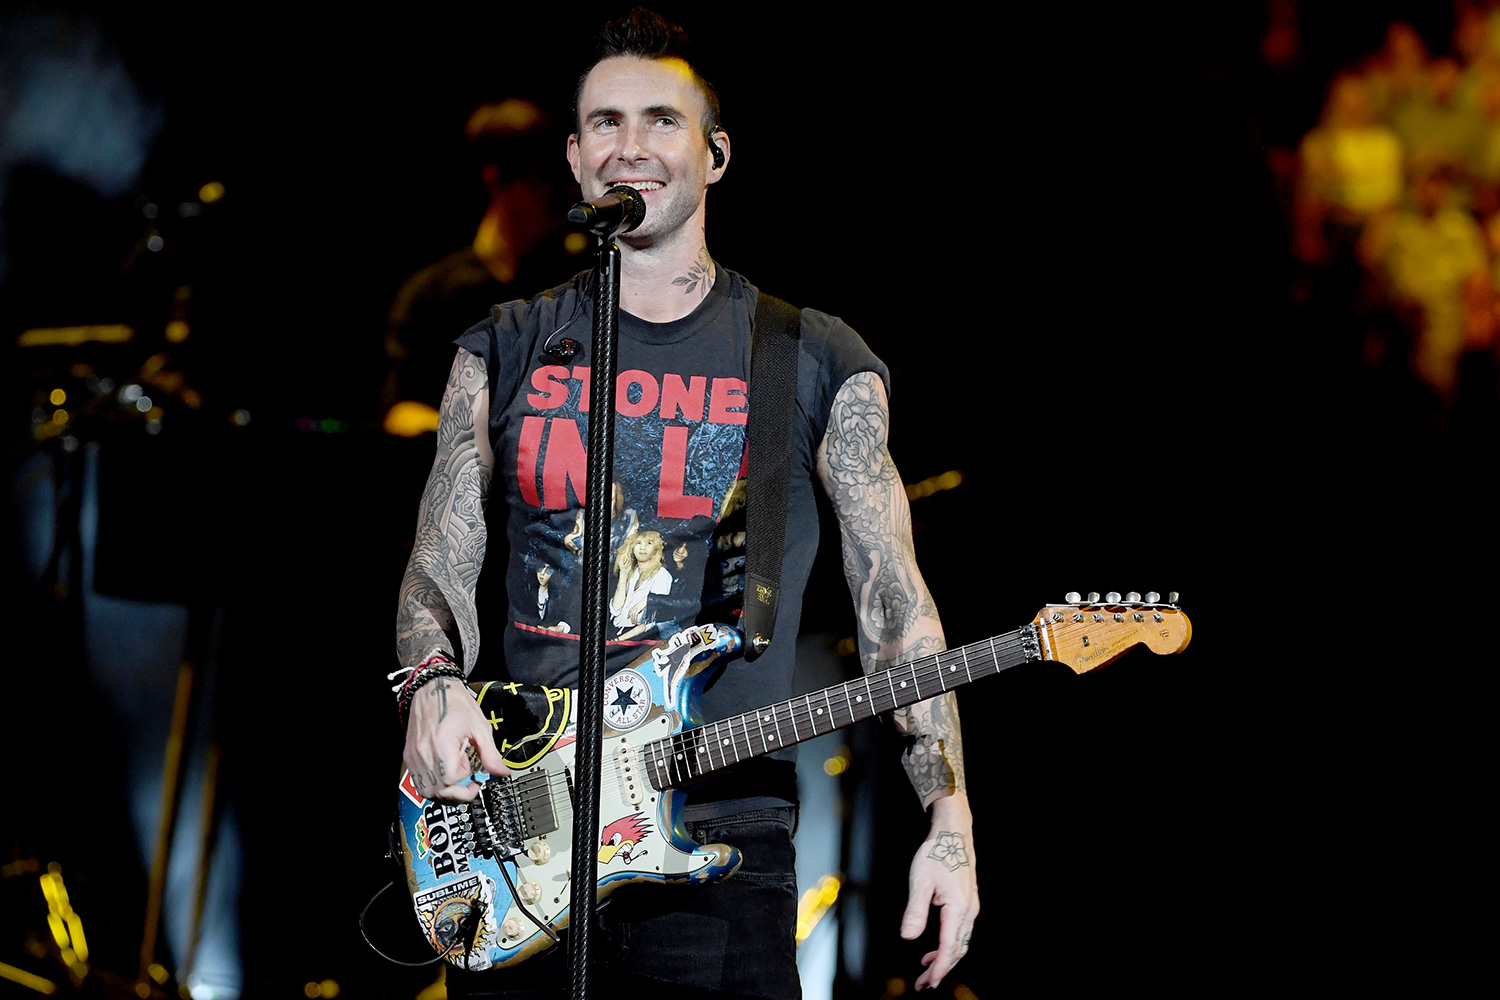 Adam Levine with Maroon 5 performs onstage during the Bud Light Super Bowl Music Fest on February 01, 2020 in Miami, Florida